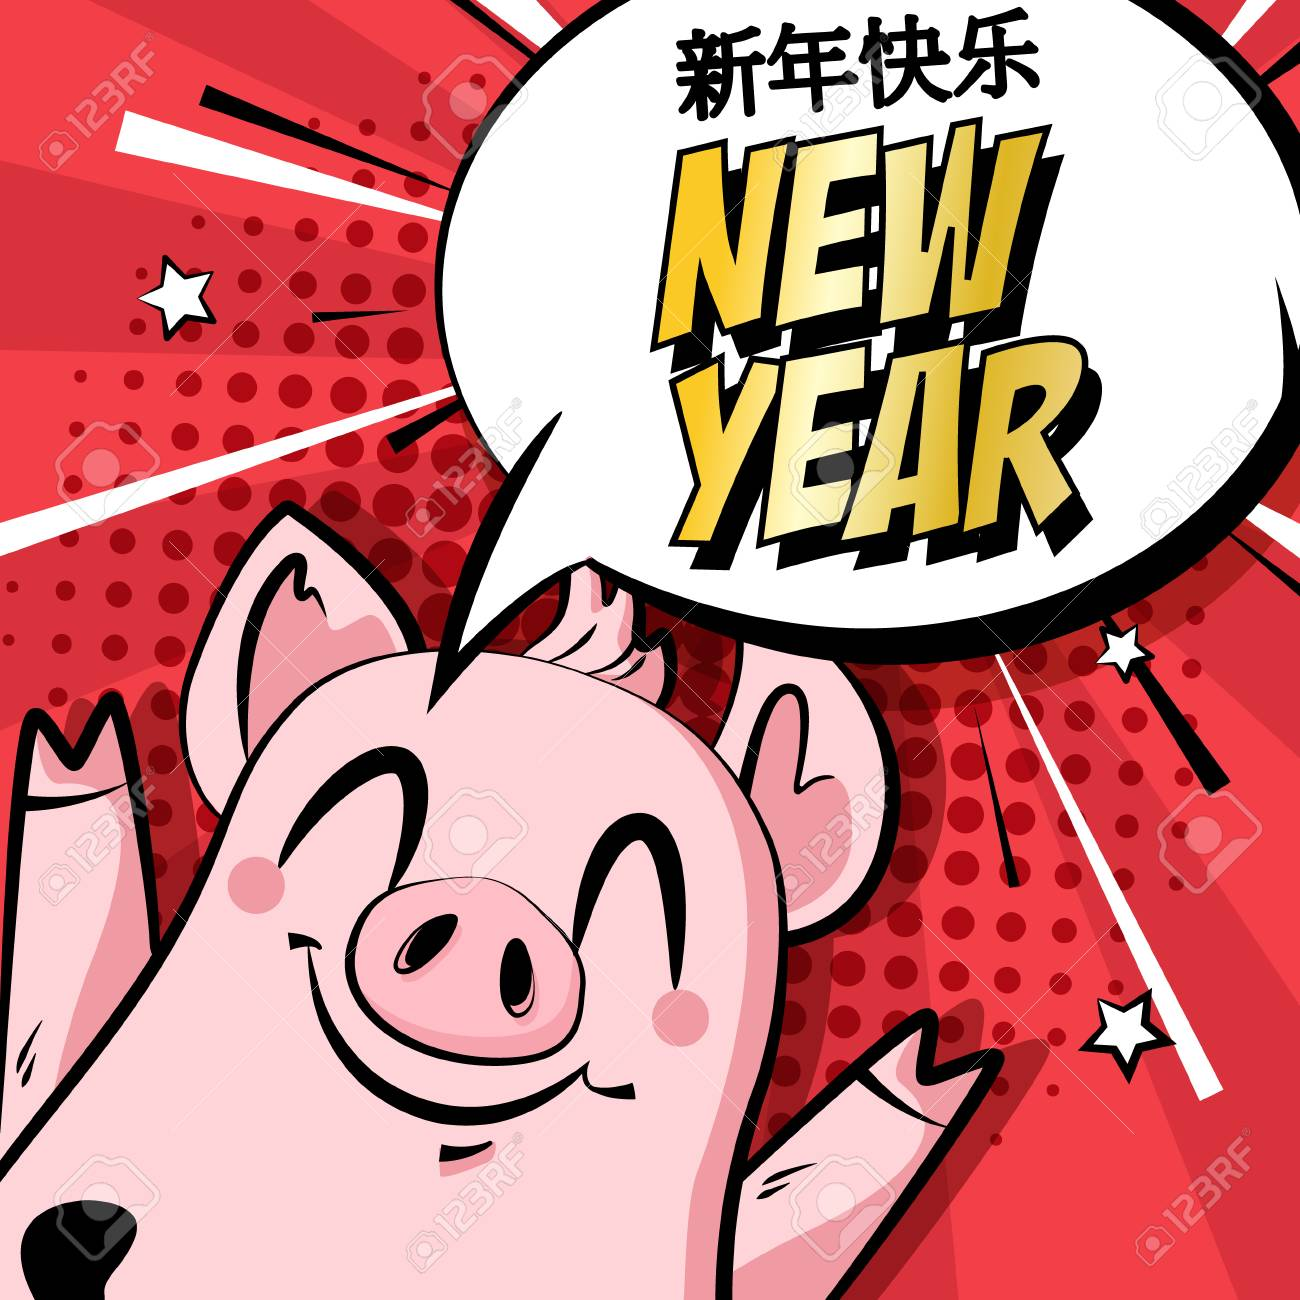 new year card with cartoon pig stars and text cloud on red background comics